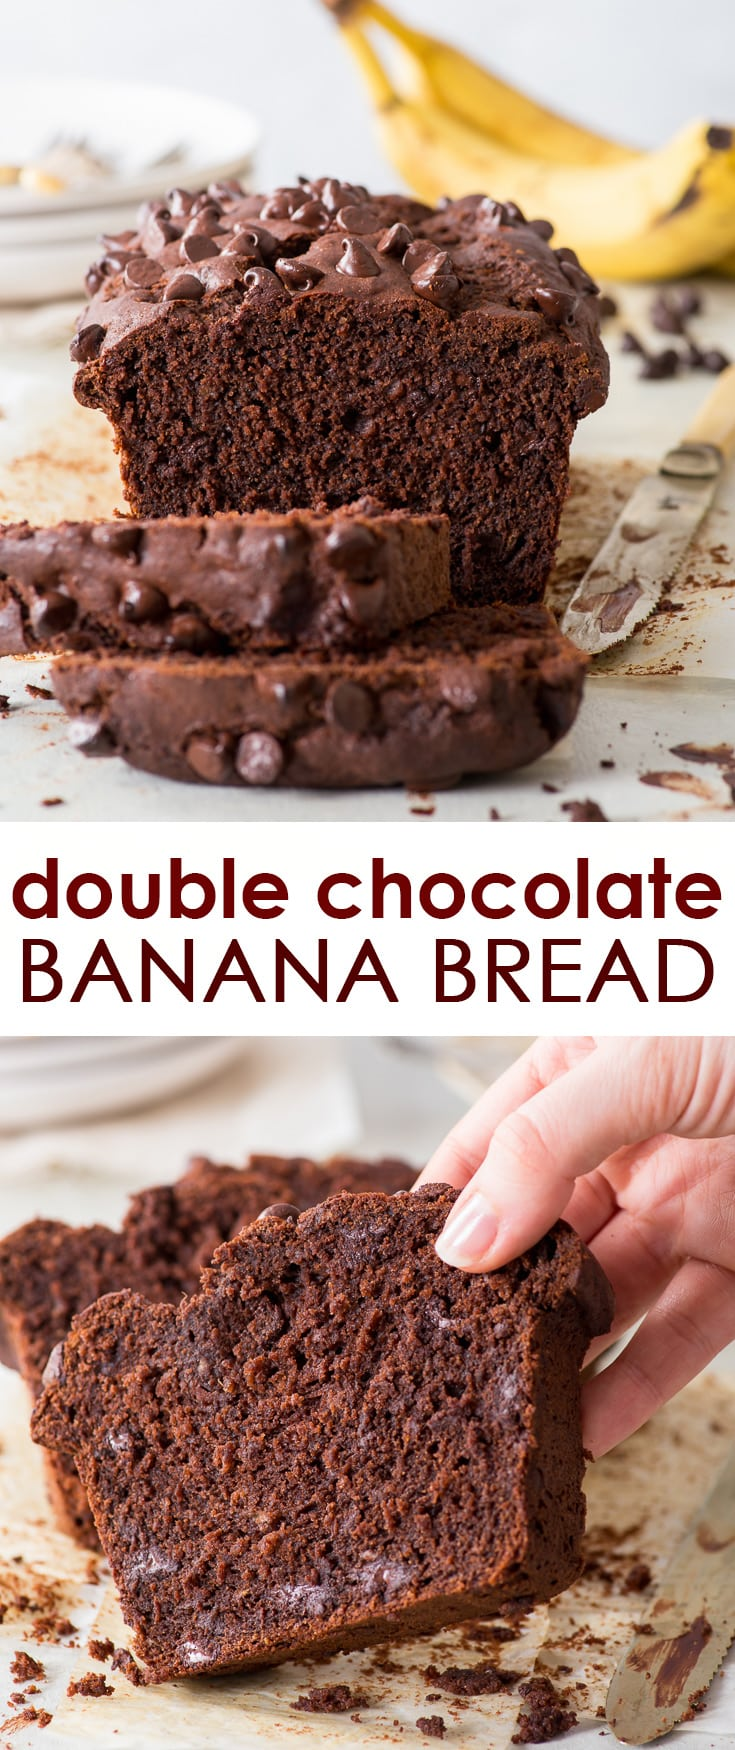 Double Chocolate Banana Bread (Gluten Free) - Moist, flavourful, chocolatey and just super delicious – this double chocolate banana bread is the ultimate comfort food. Easy to make, gluten free and generously studded with chocolate chips, it really doesn't get much better than this. Gluten free banana bread recipe. Banana dessert. Gluten free desserts. Gluten free recipes. Easy dessert ideas. Chocolate recipes. Chocolate chip banana bread. #bananabread #glutenfree